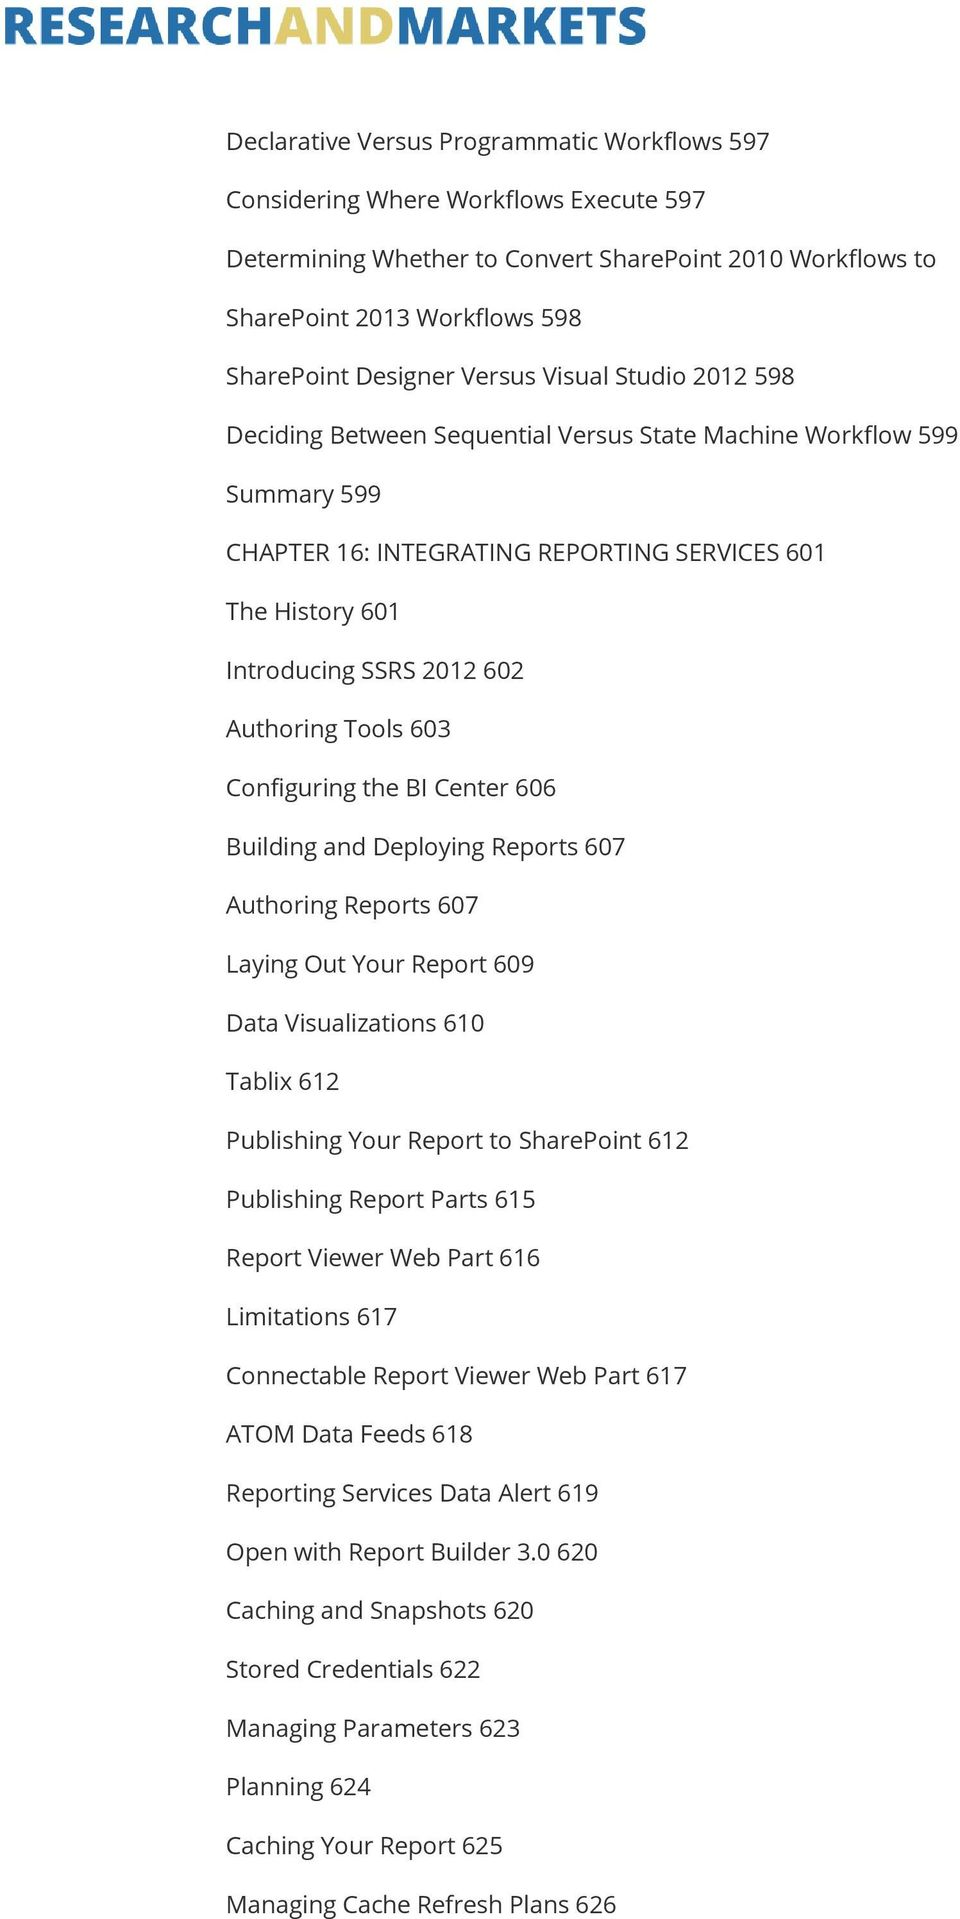 Authoring Tools 603 Configuring the BI Center 606 Building and Deploying Reports 607 Authoring Reports 607 Laying Out Your Report 609 Data Visualizations 610 Tablix 612 Publishing Your Report to